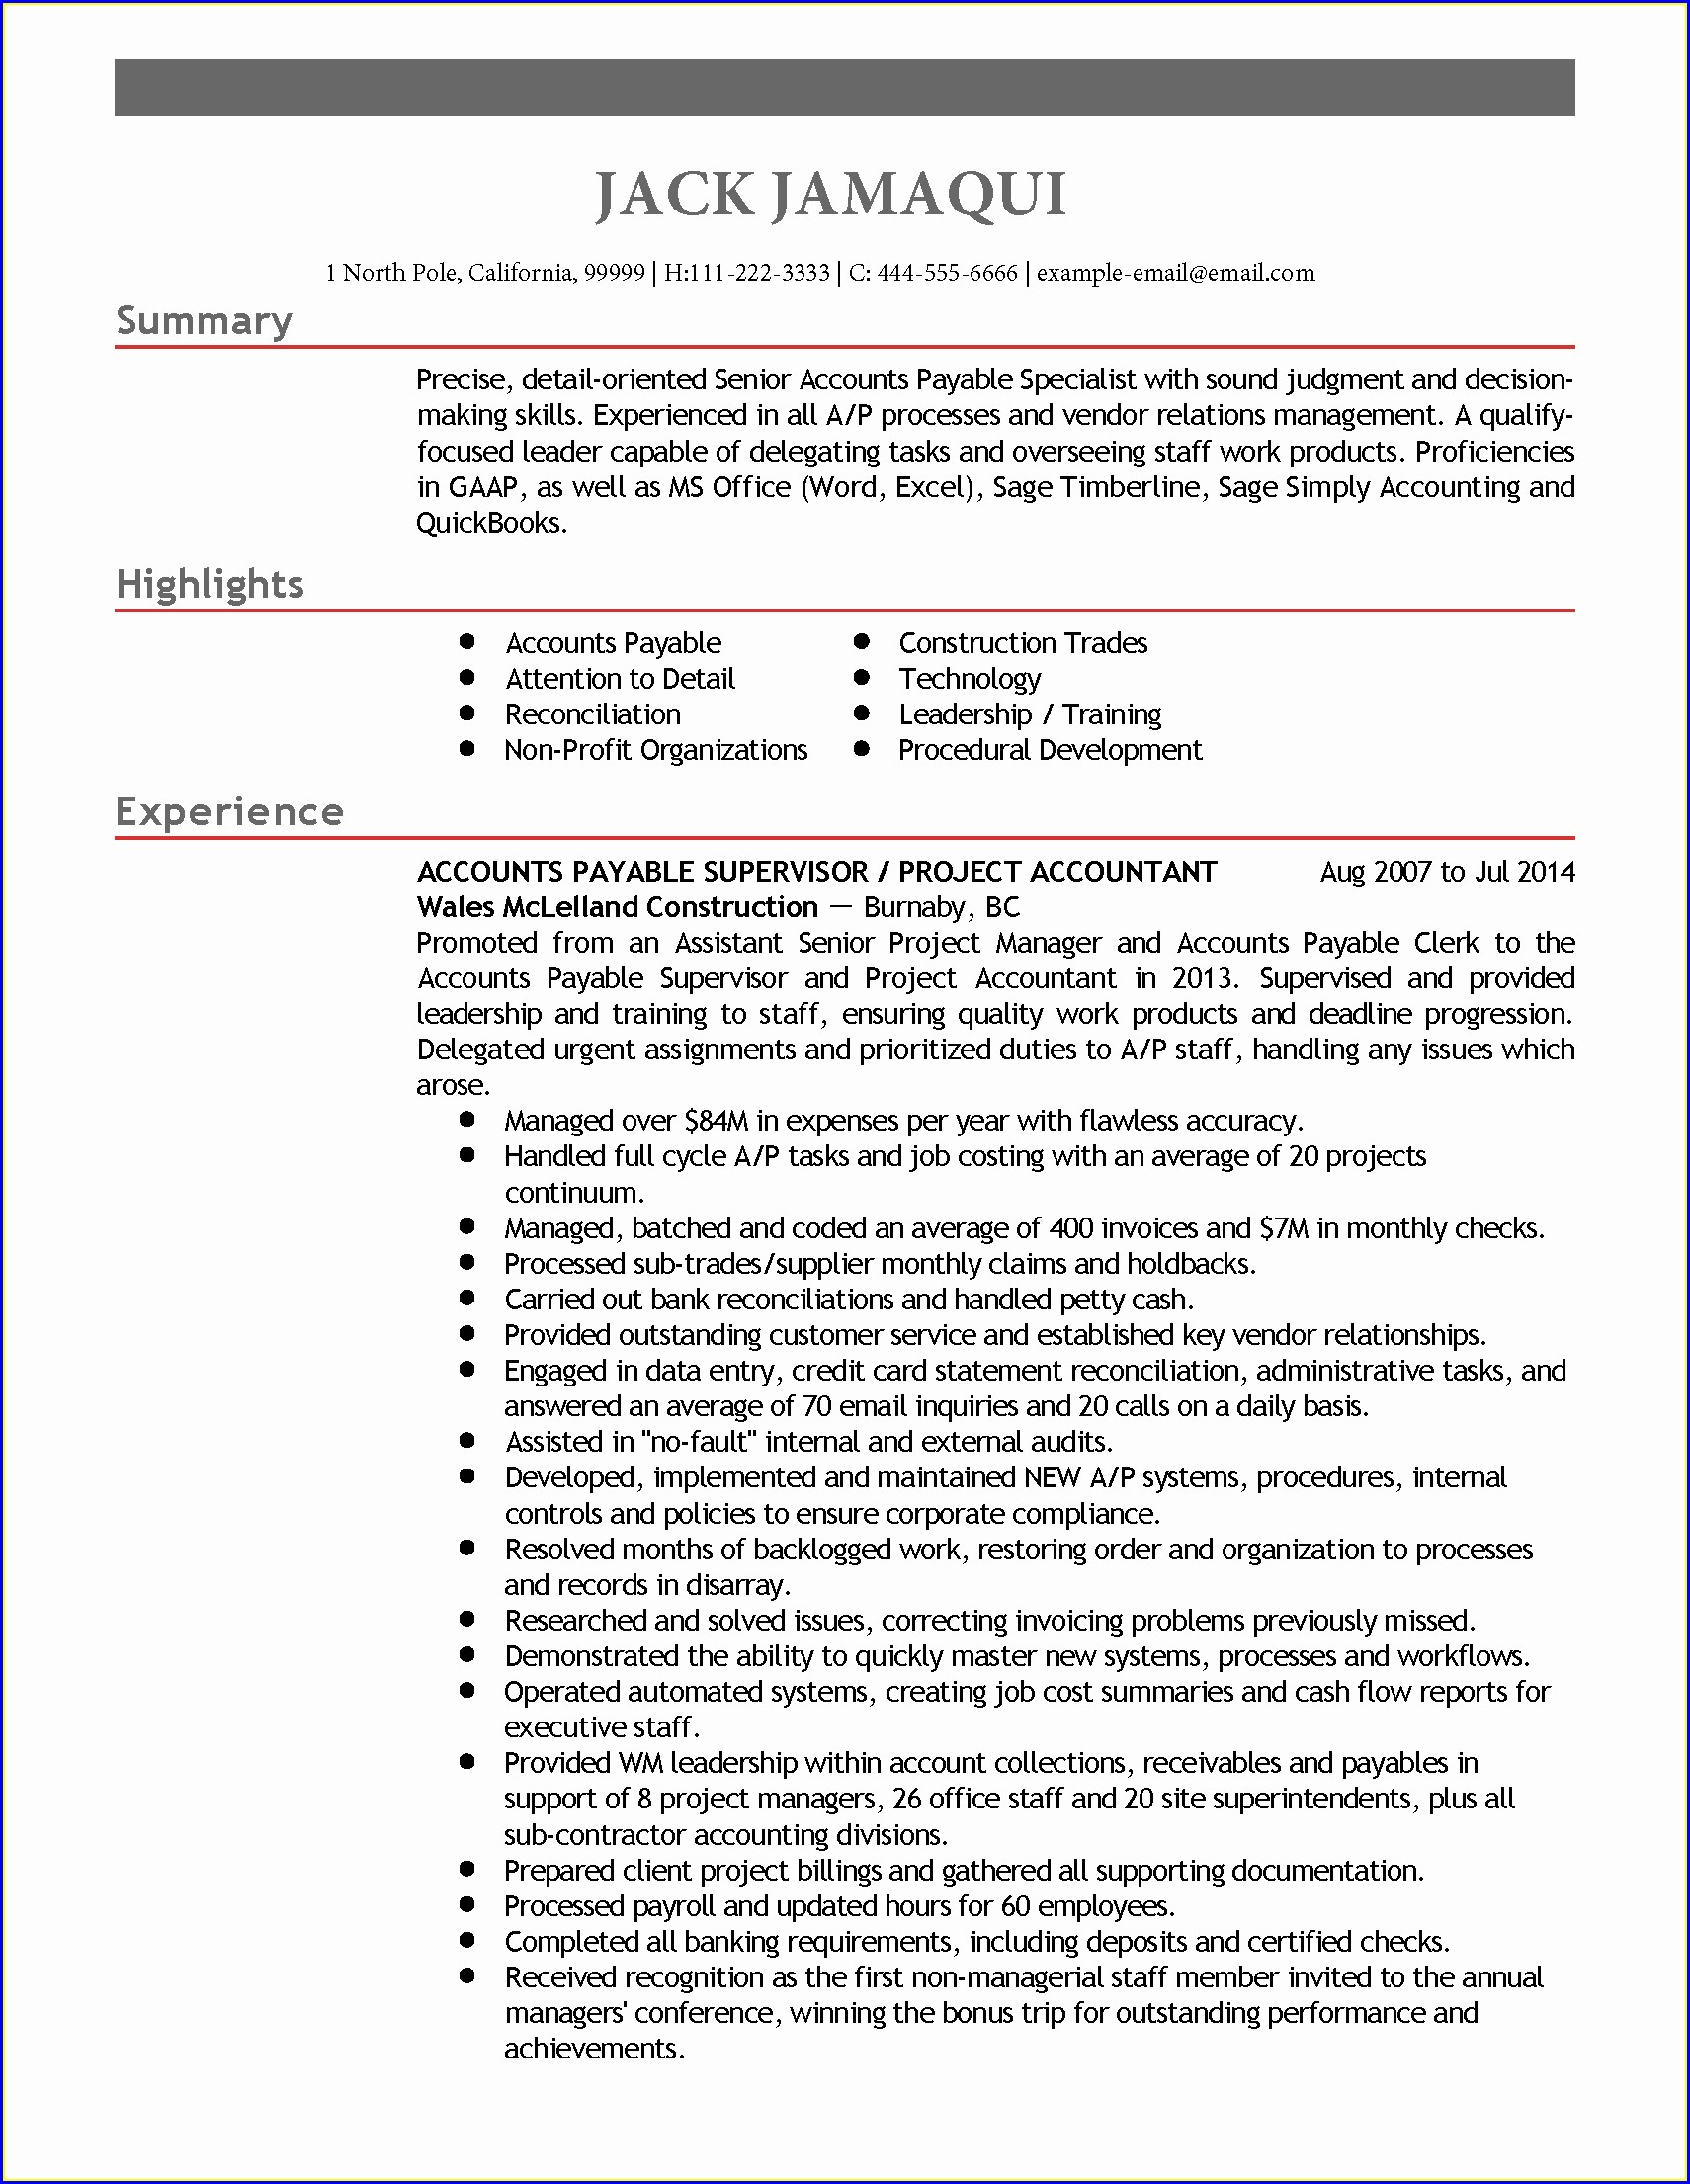 Resume Objective Accounts Payable Specialist